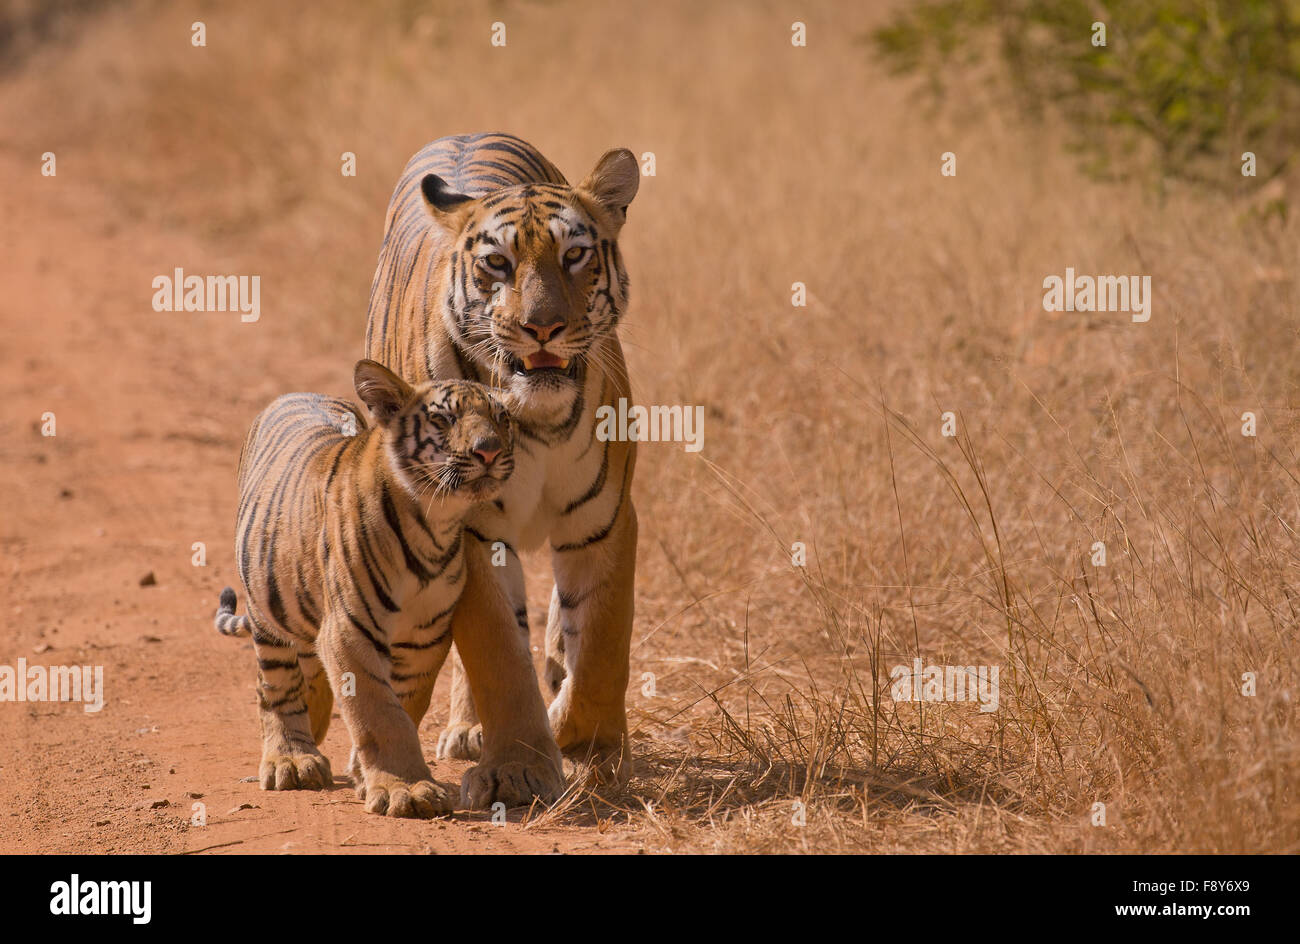 A bengal tiger with cubs in Tadoba Andhari Tiger Reserve - Stock Image